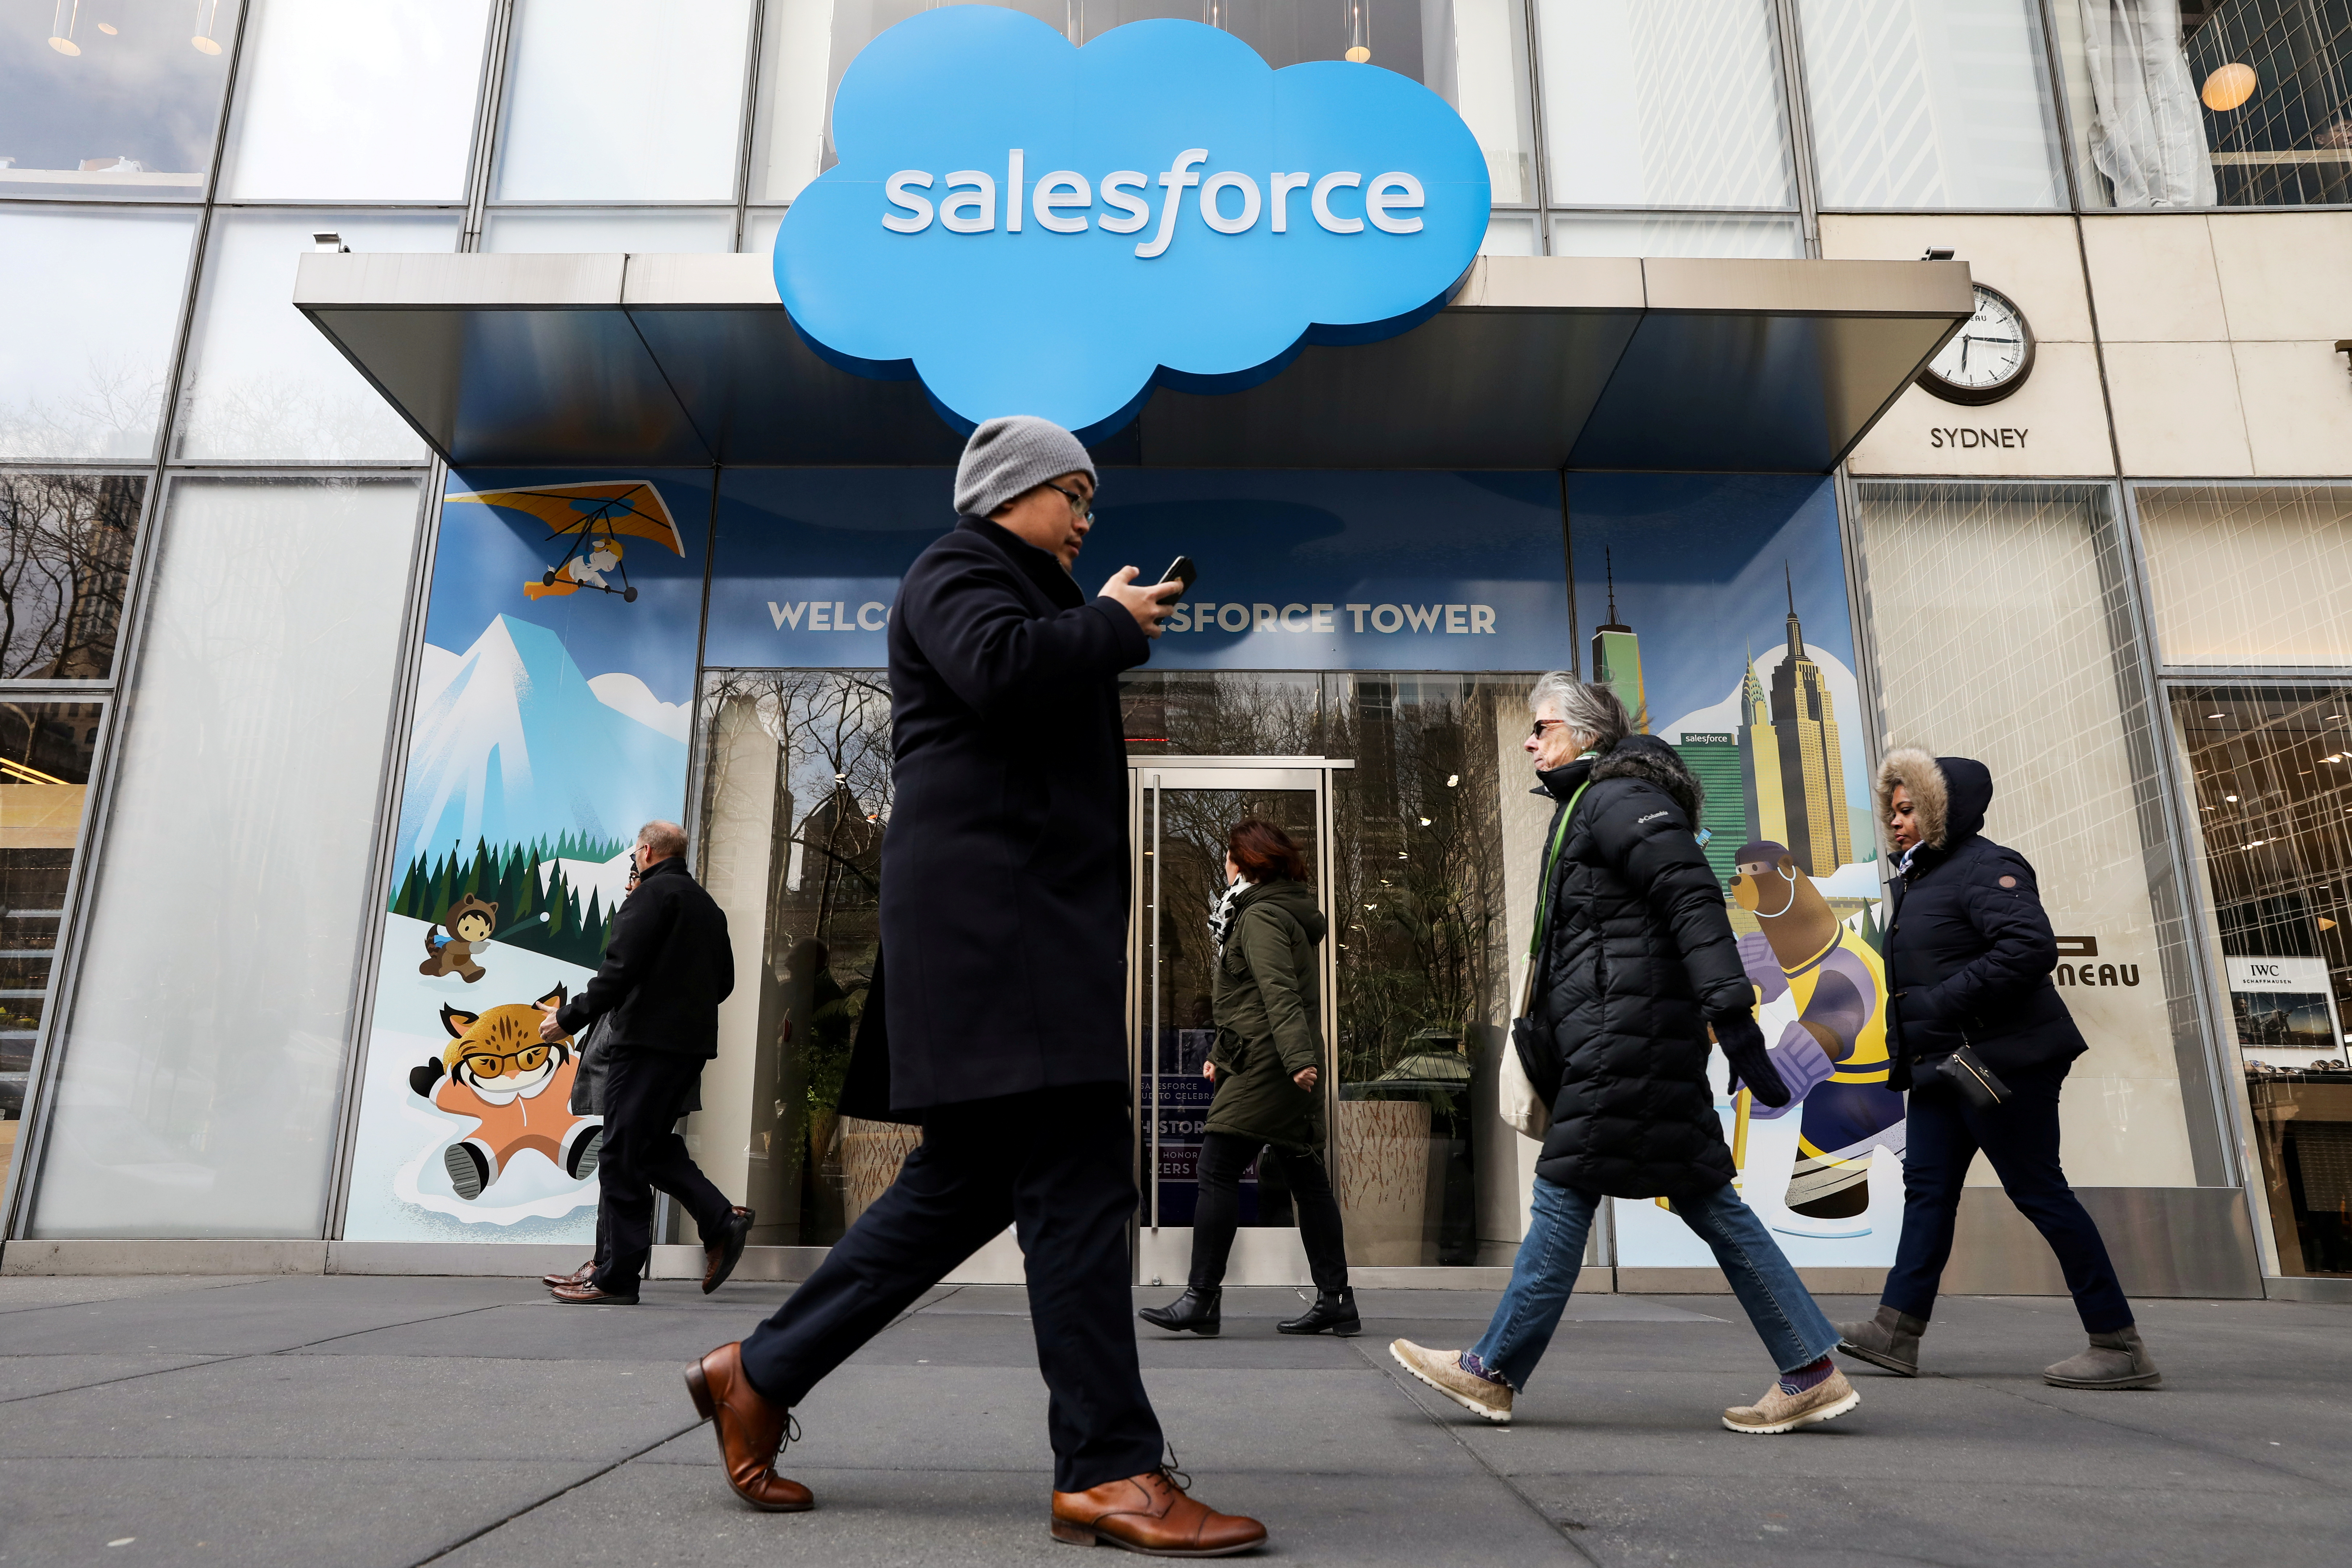 People pass by the Salesforce Tower and Salesforce.com offices in New York City, U.S., March 7, 2019. REUTERS/Brendan McDermid